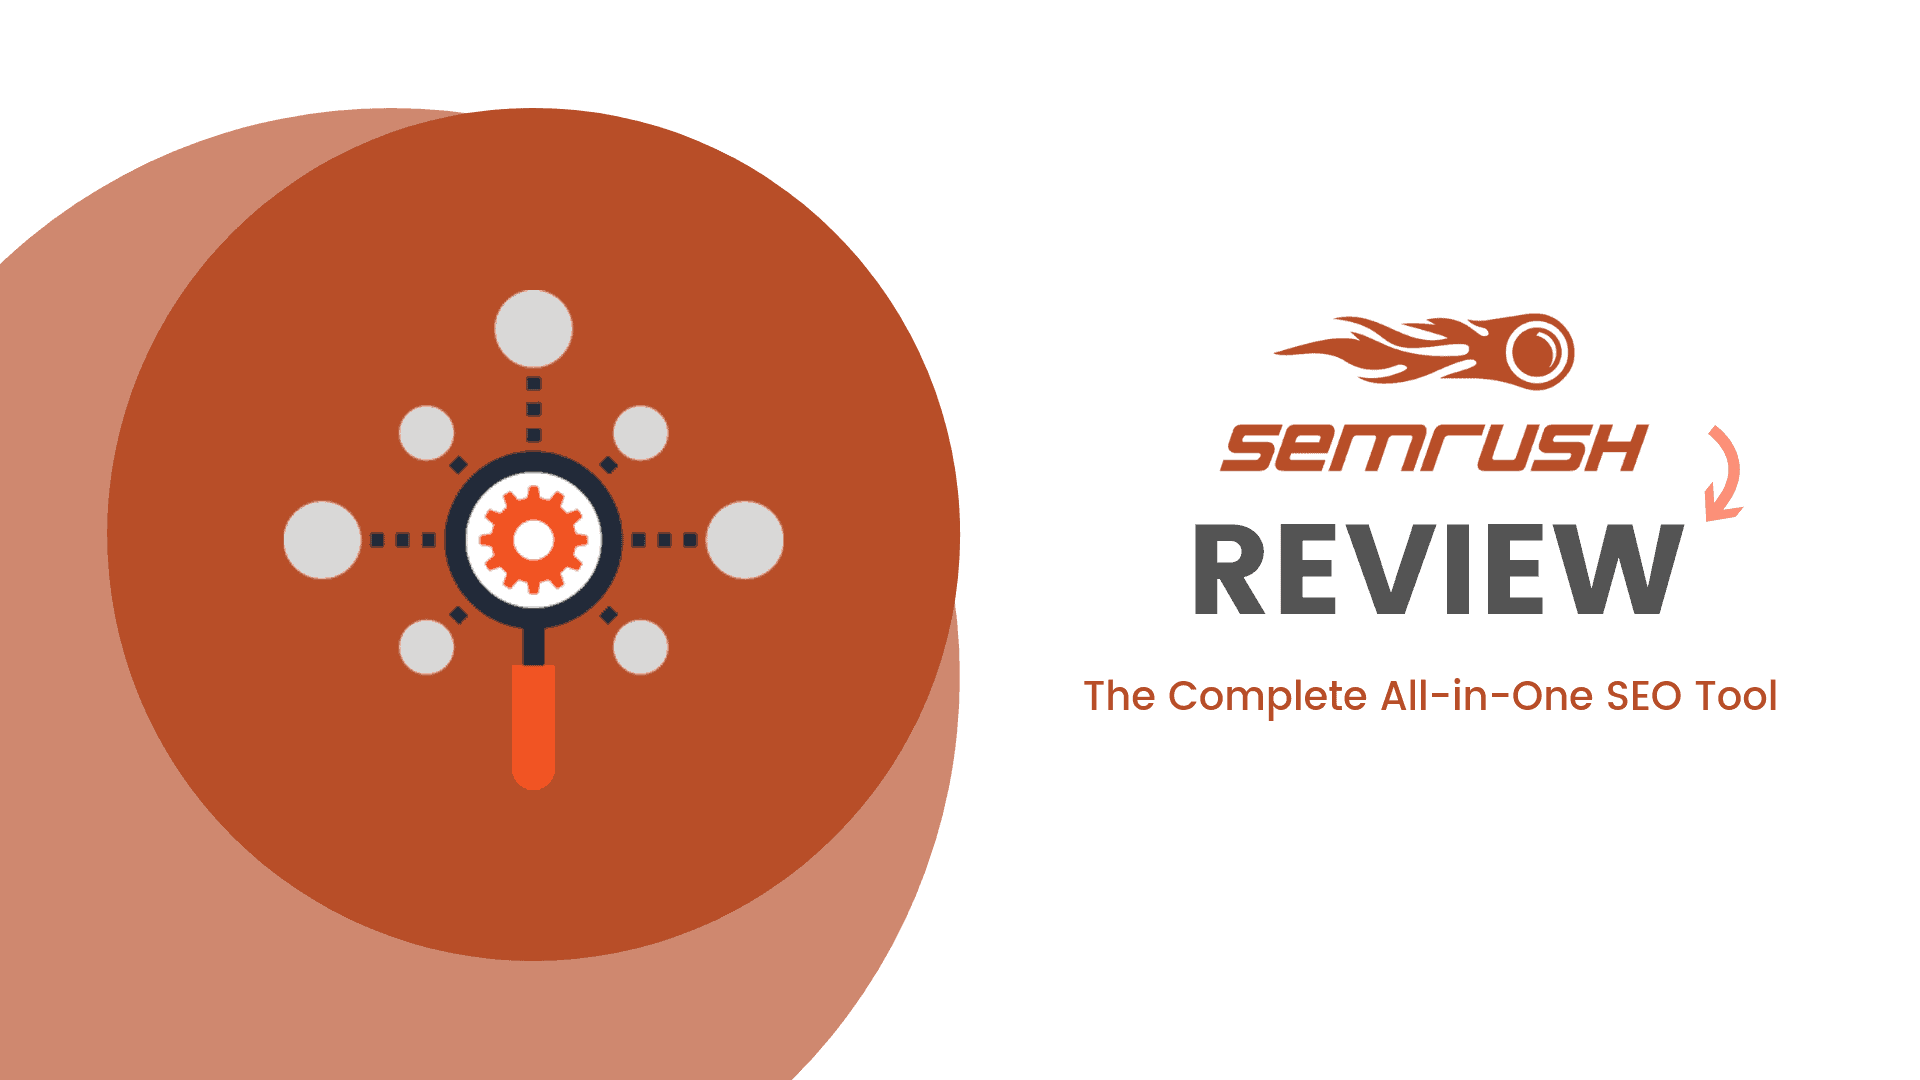 Service Center  Semrush